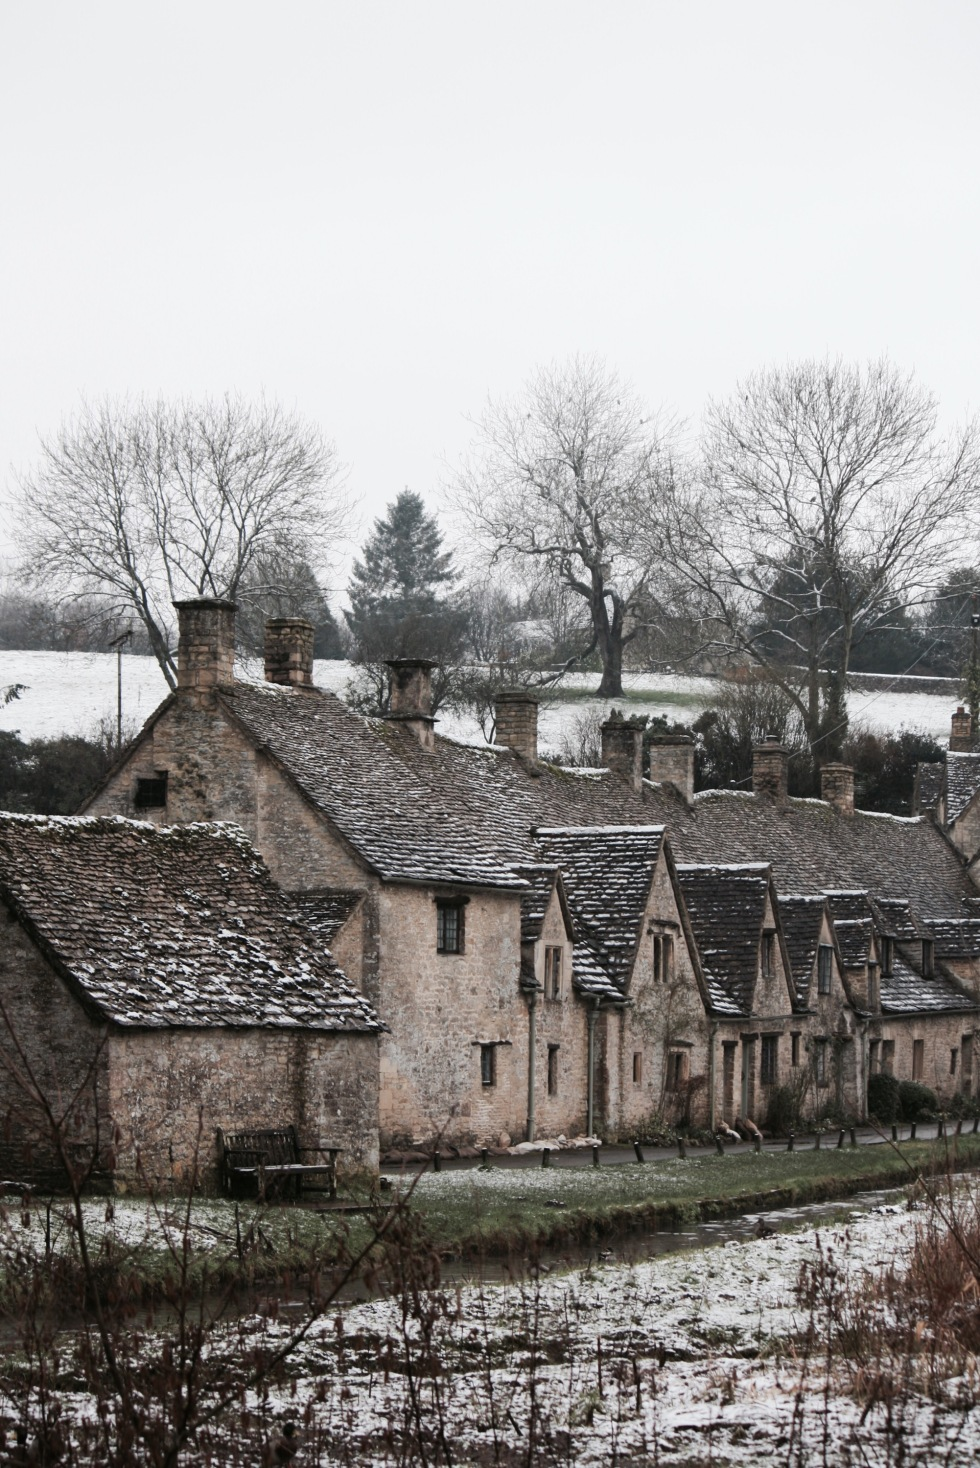 Arlington Row, Bibury, February 2013